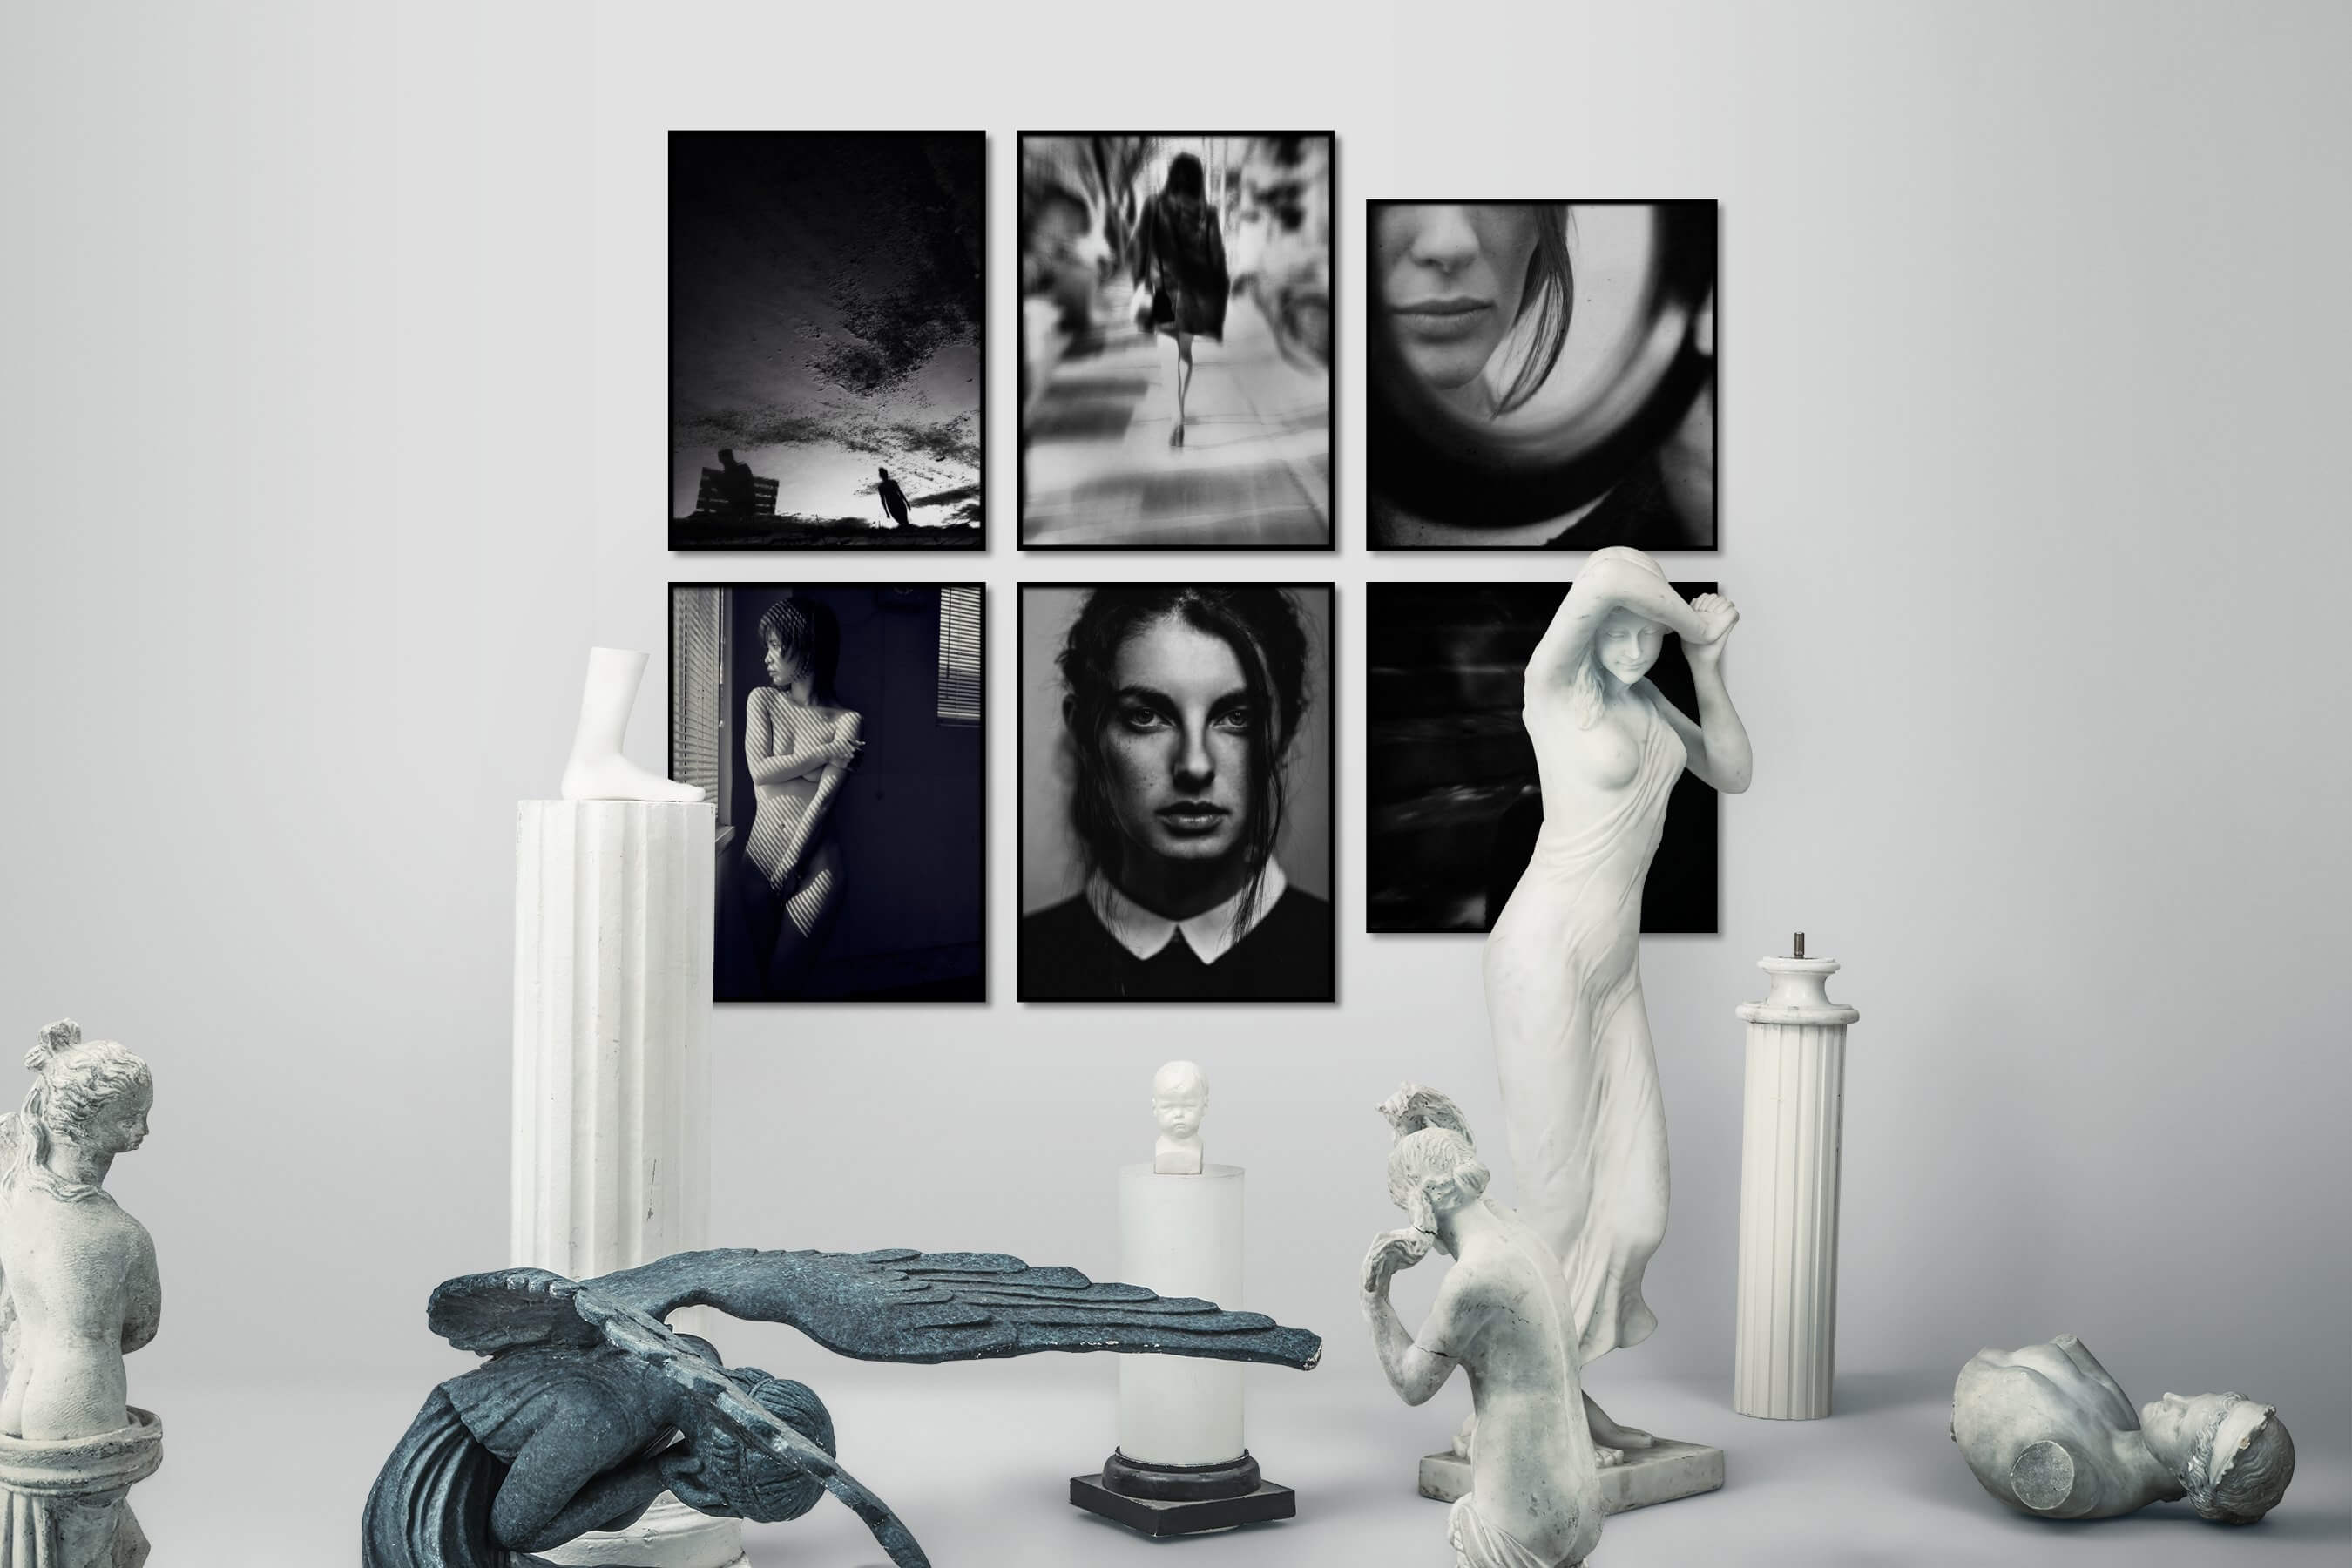 Gallery wall idea with six framed pictures arranged on a wall depicting Black & White, For the Minimalist, Fashion & Beauty, and Dark Tones